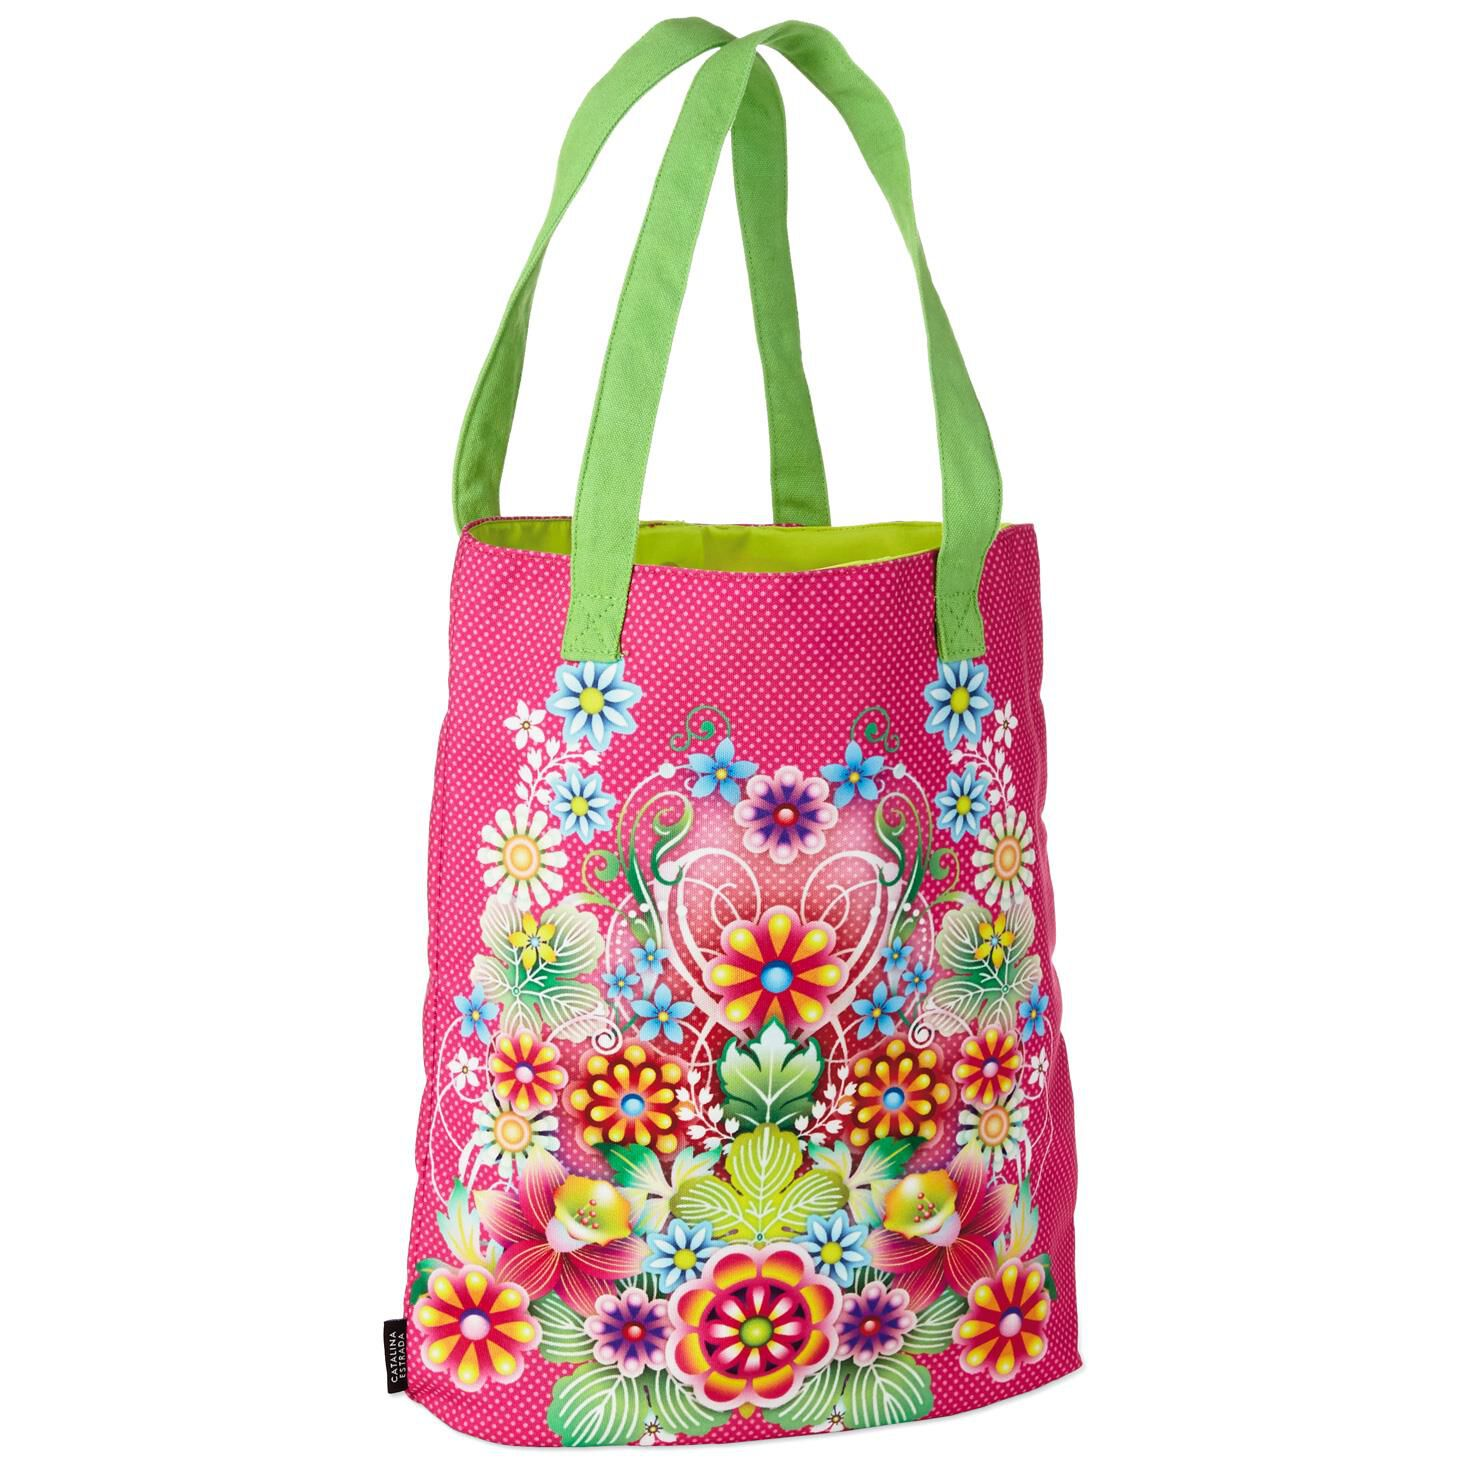 VIDA Tote Bag - butterflies are free by VIDA s37ehK